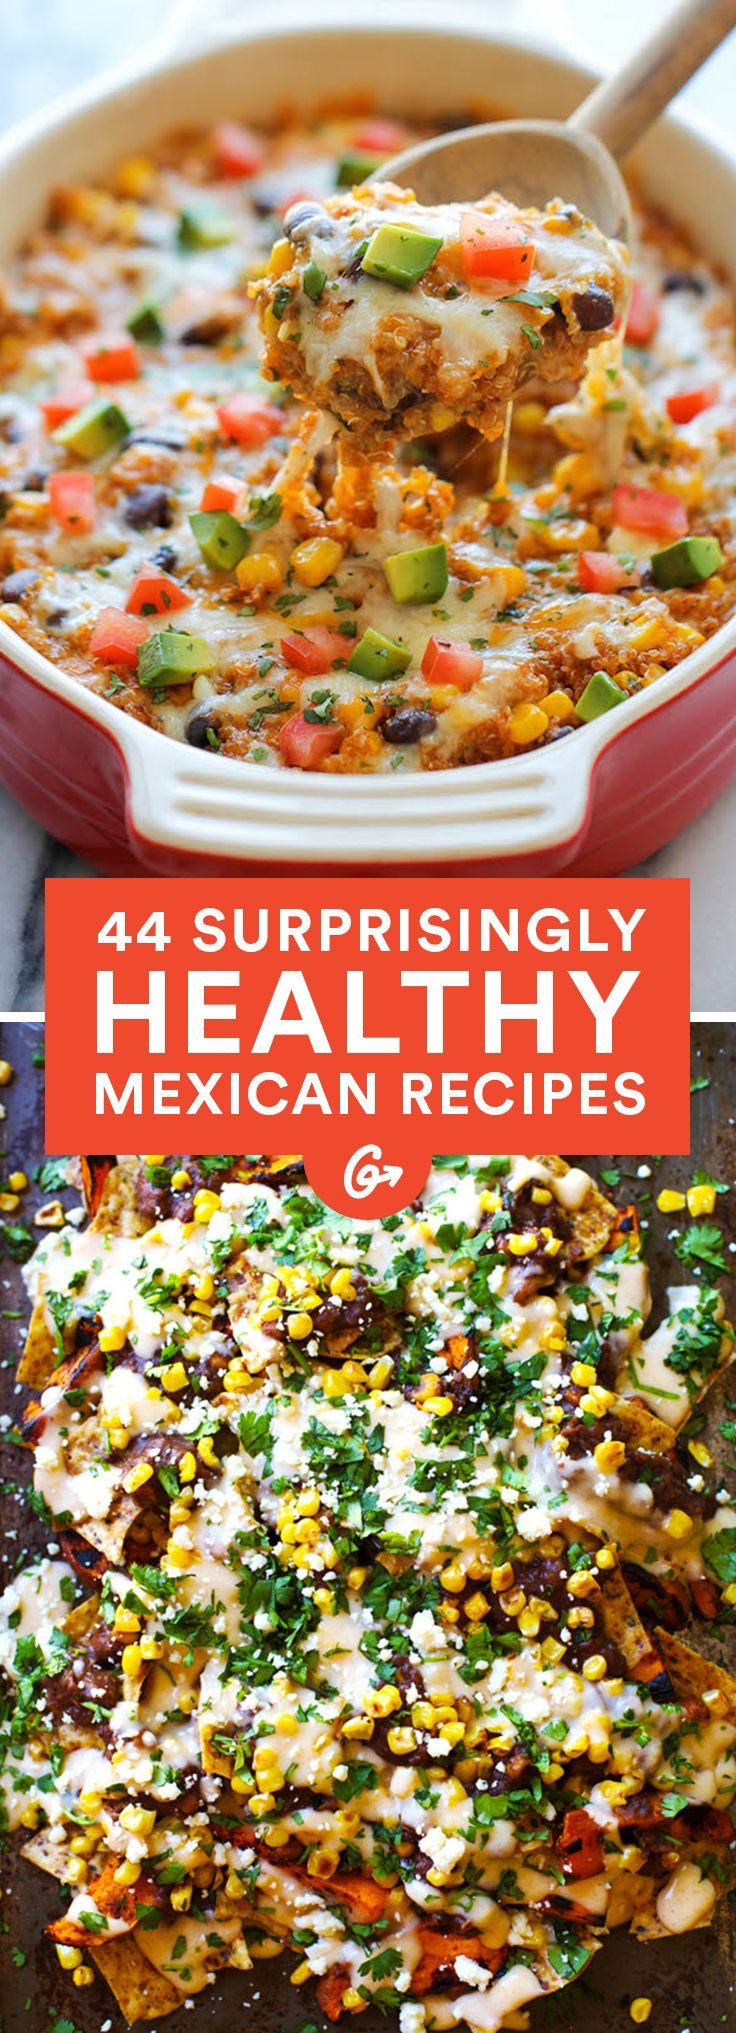 Healthy Mexican Food Recipes  Best 25 Healthy mexican recipes ideas on Pinterest